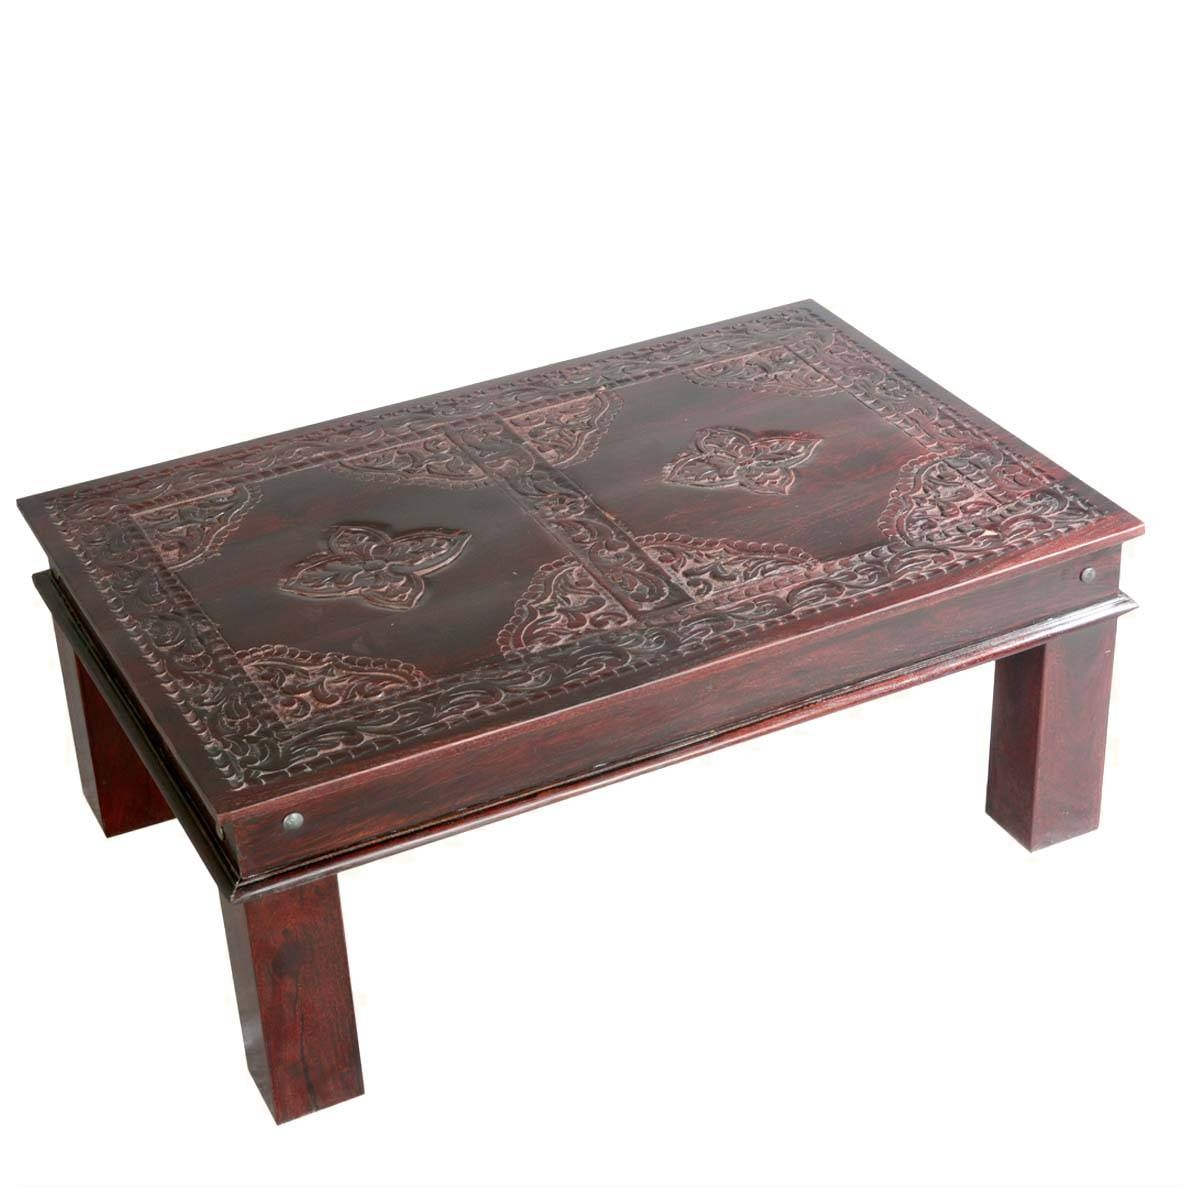 2017 popular mango coffee tables artisan collection asian ornate hand carved mango wood coffee intended for mango coffee tables image geotapseo Gallery